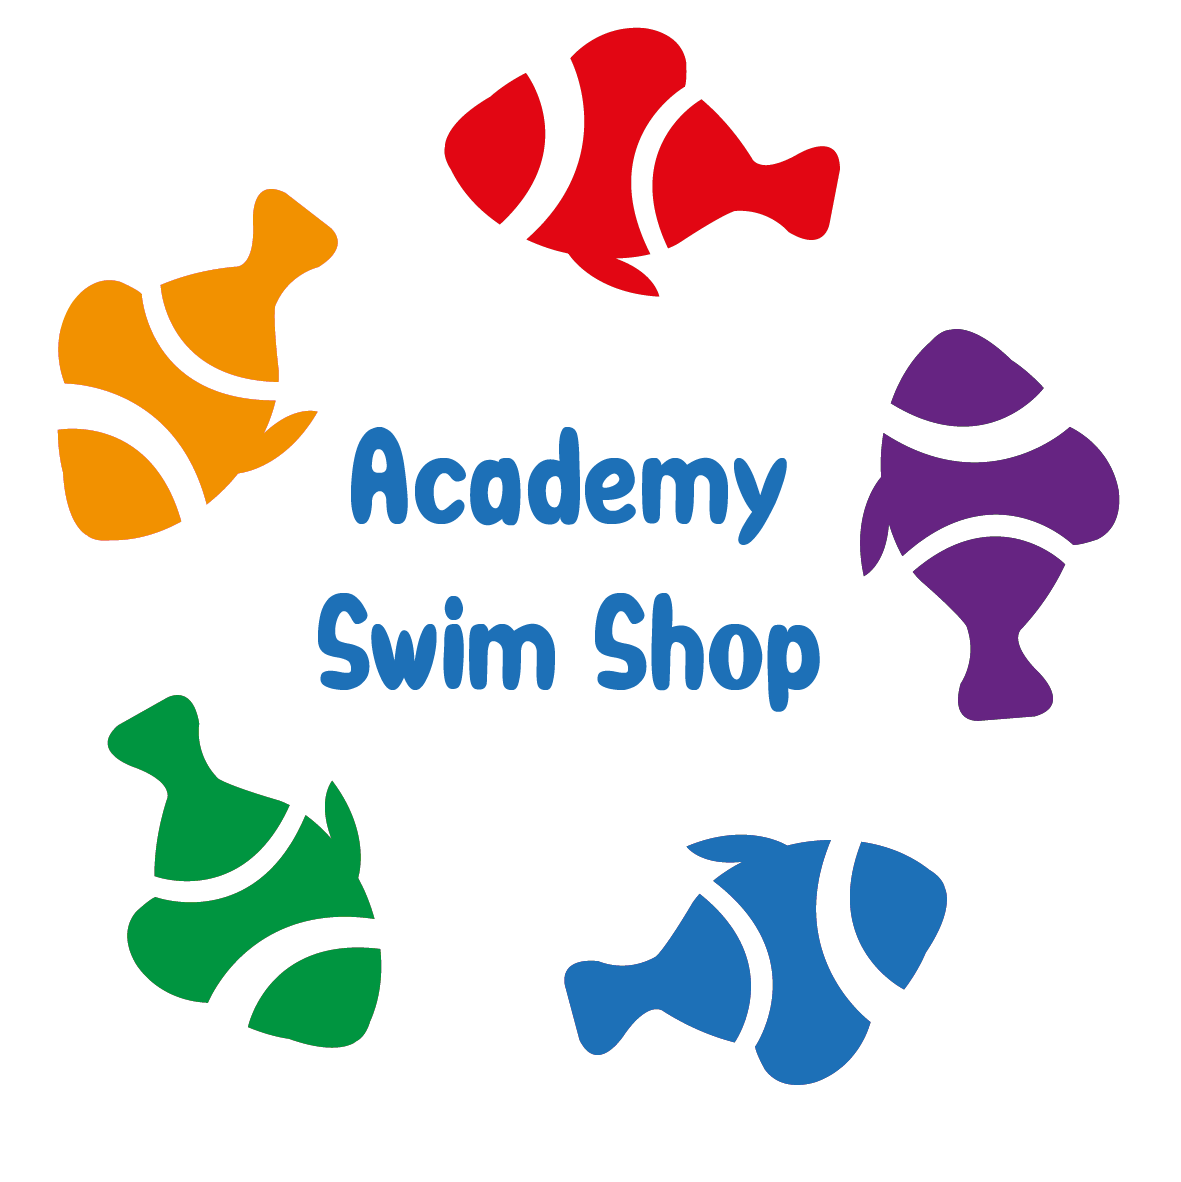 Academy Swim Shop